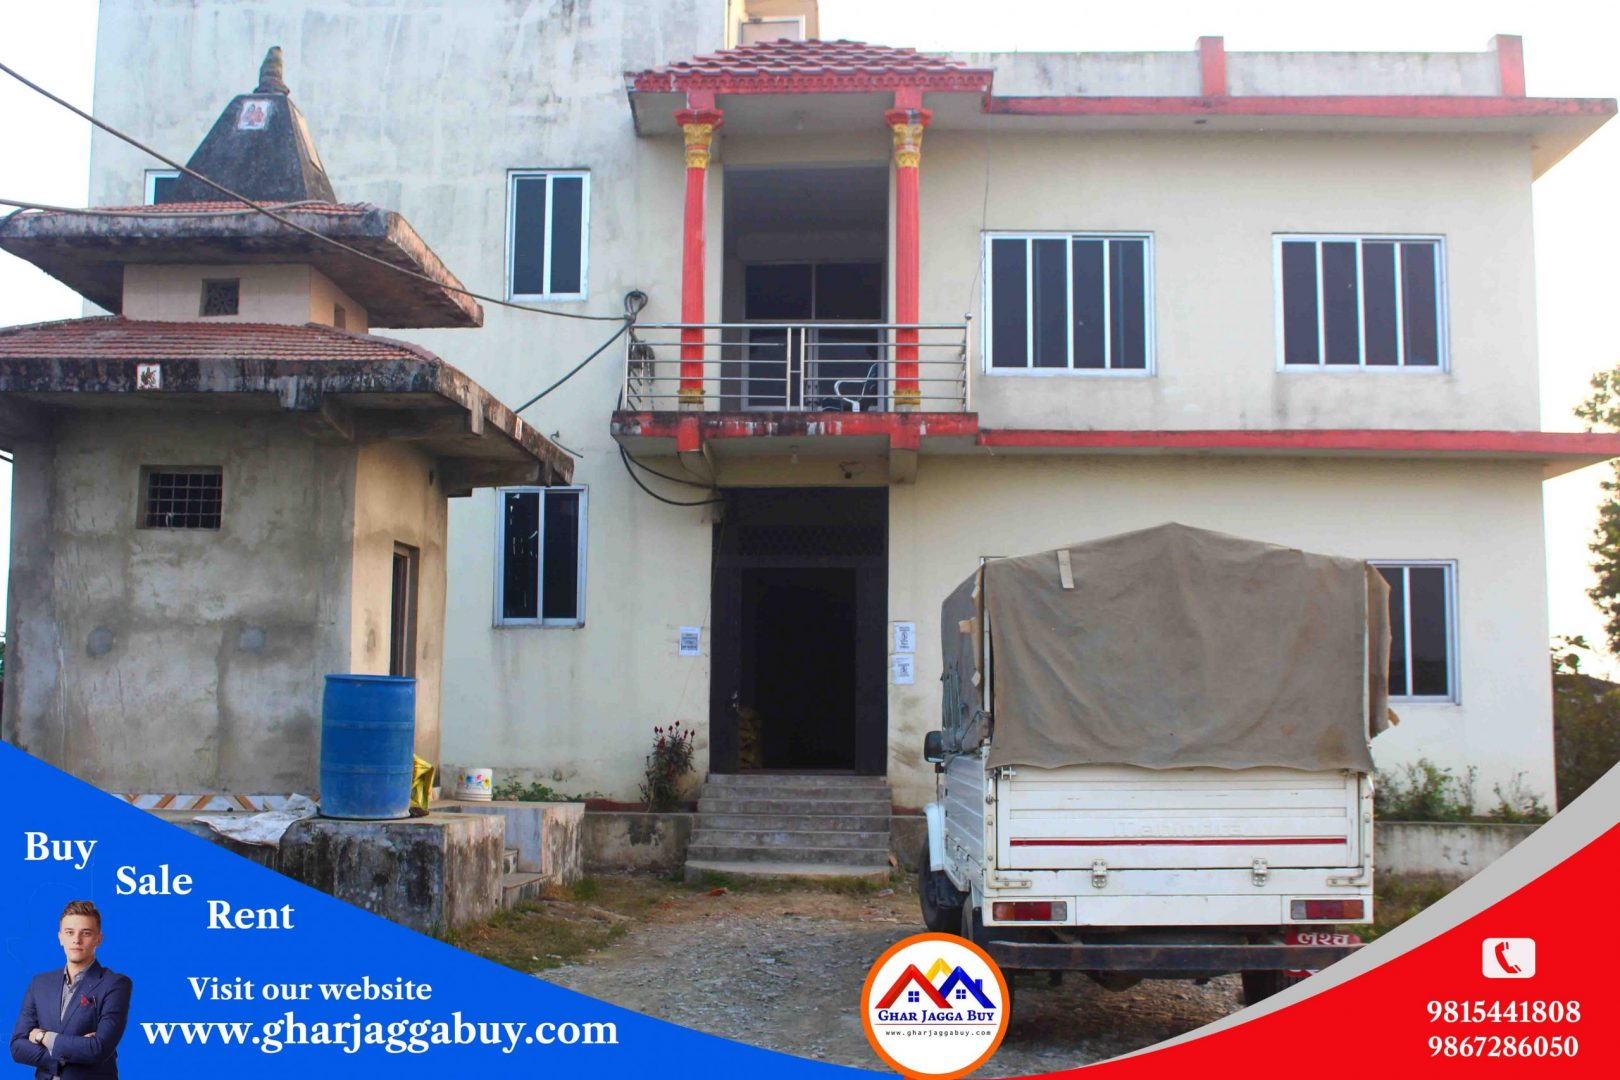 A garment factory having compound with land for sale in Rupandehi